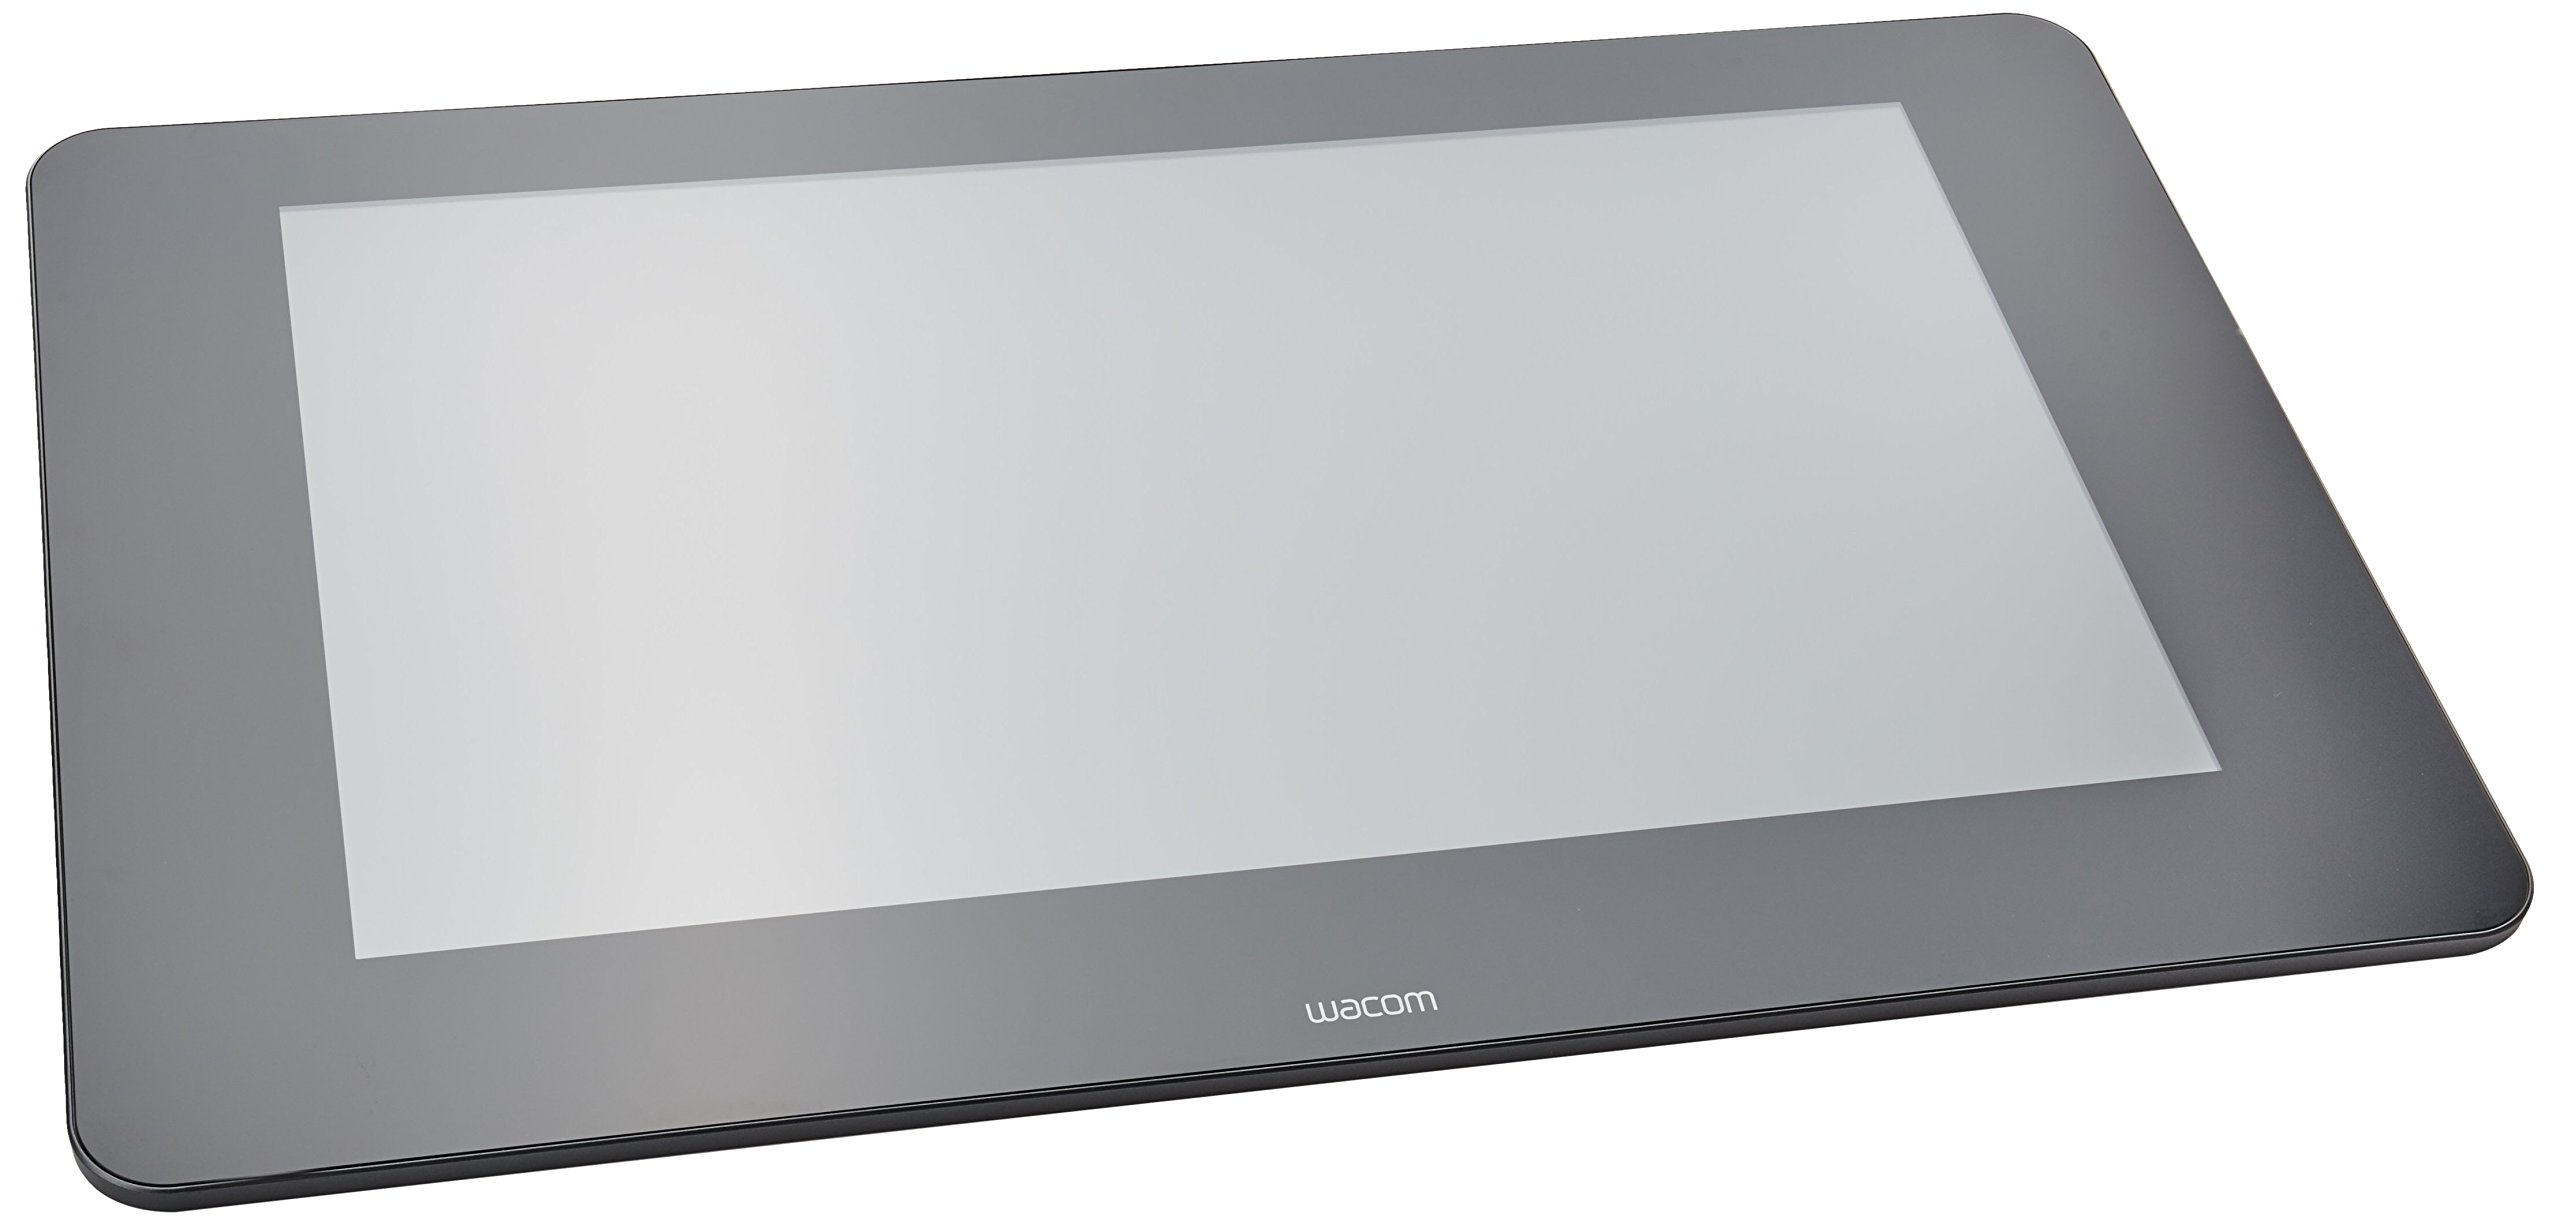 Wacom Cintiq 27QHD 27'' Creative Pen Display